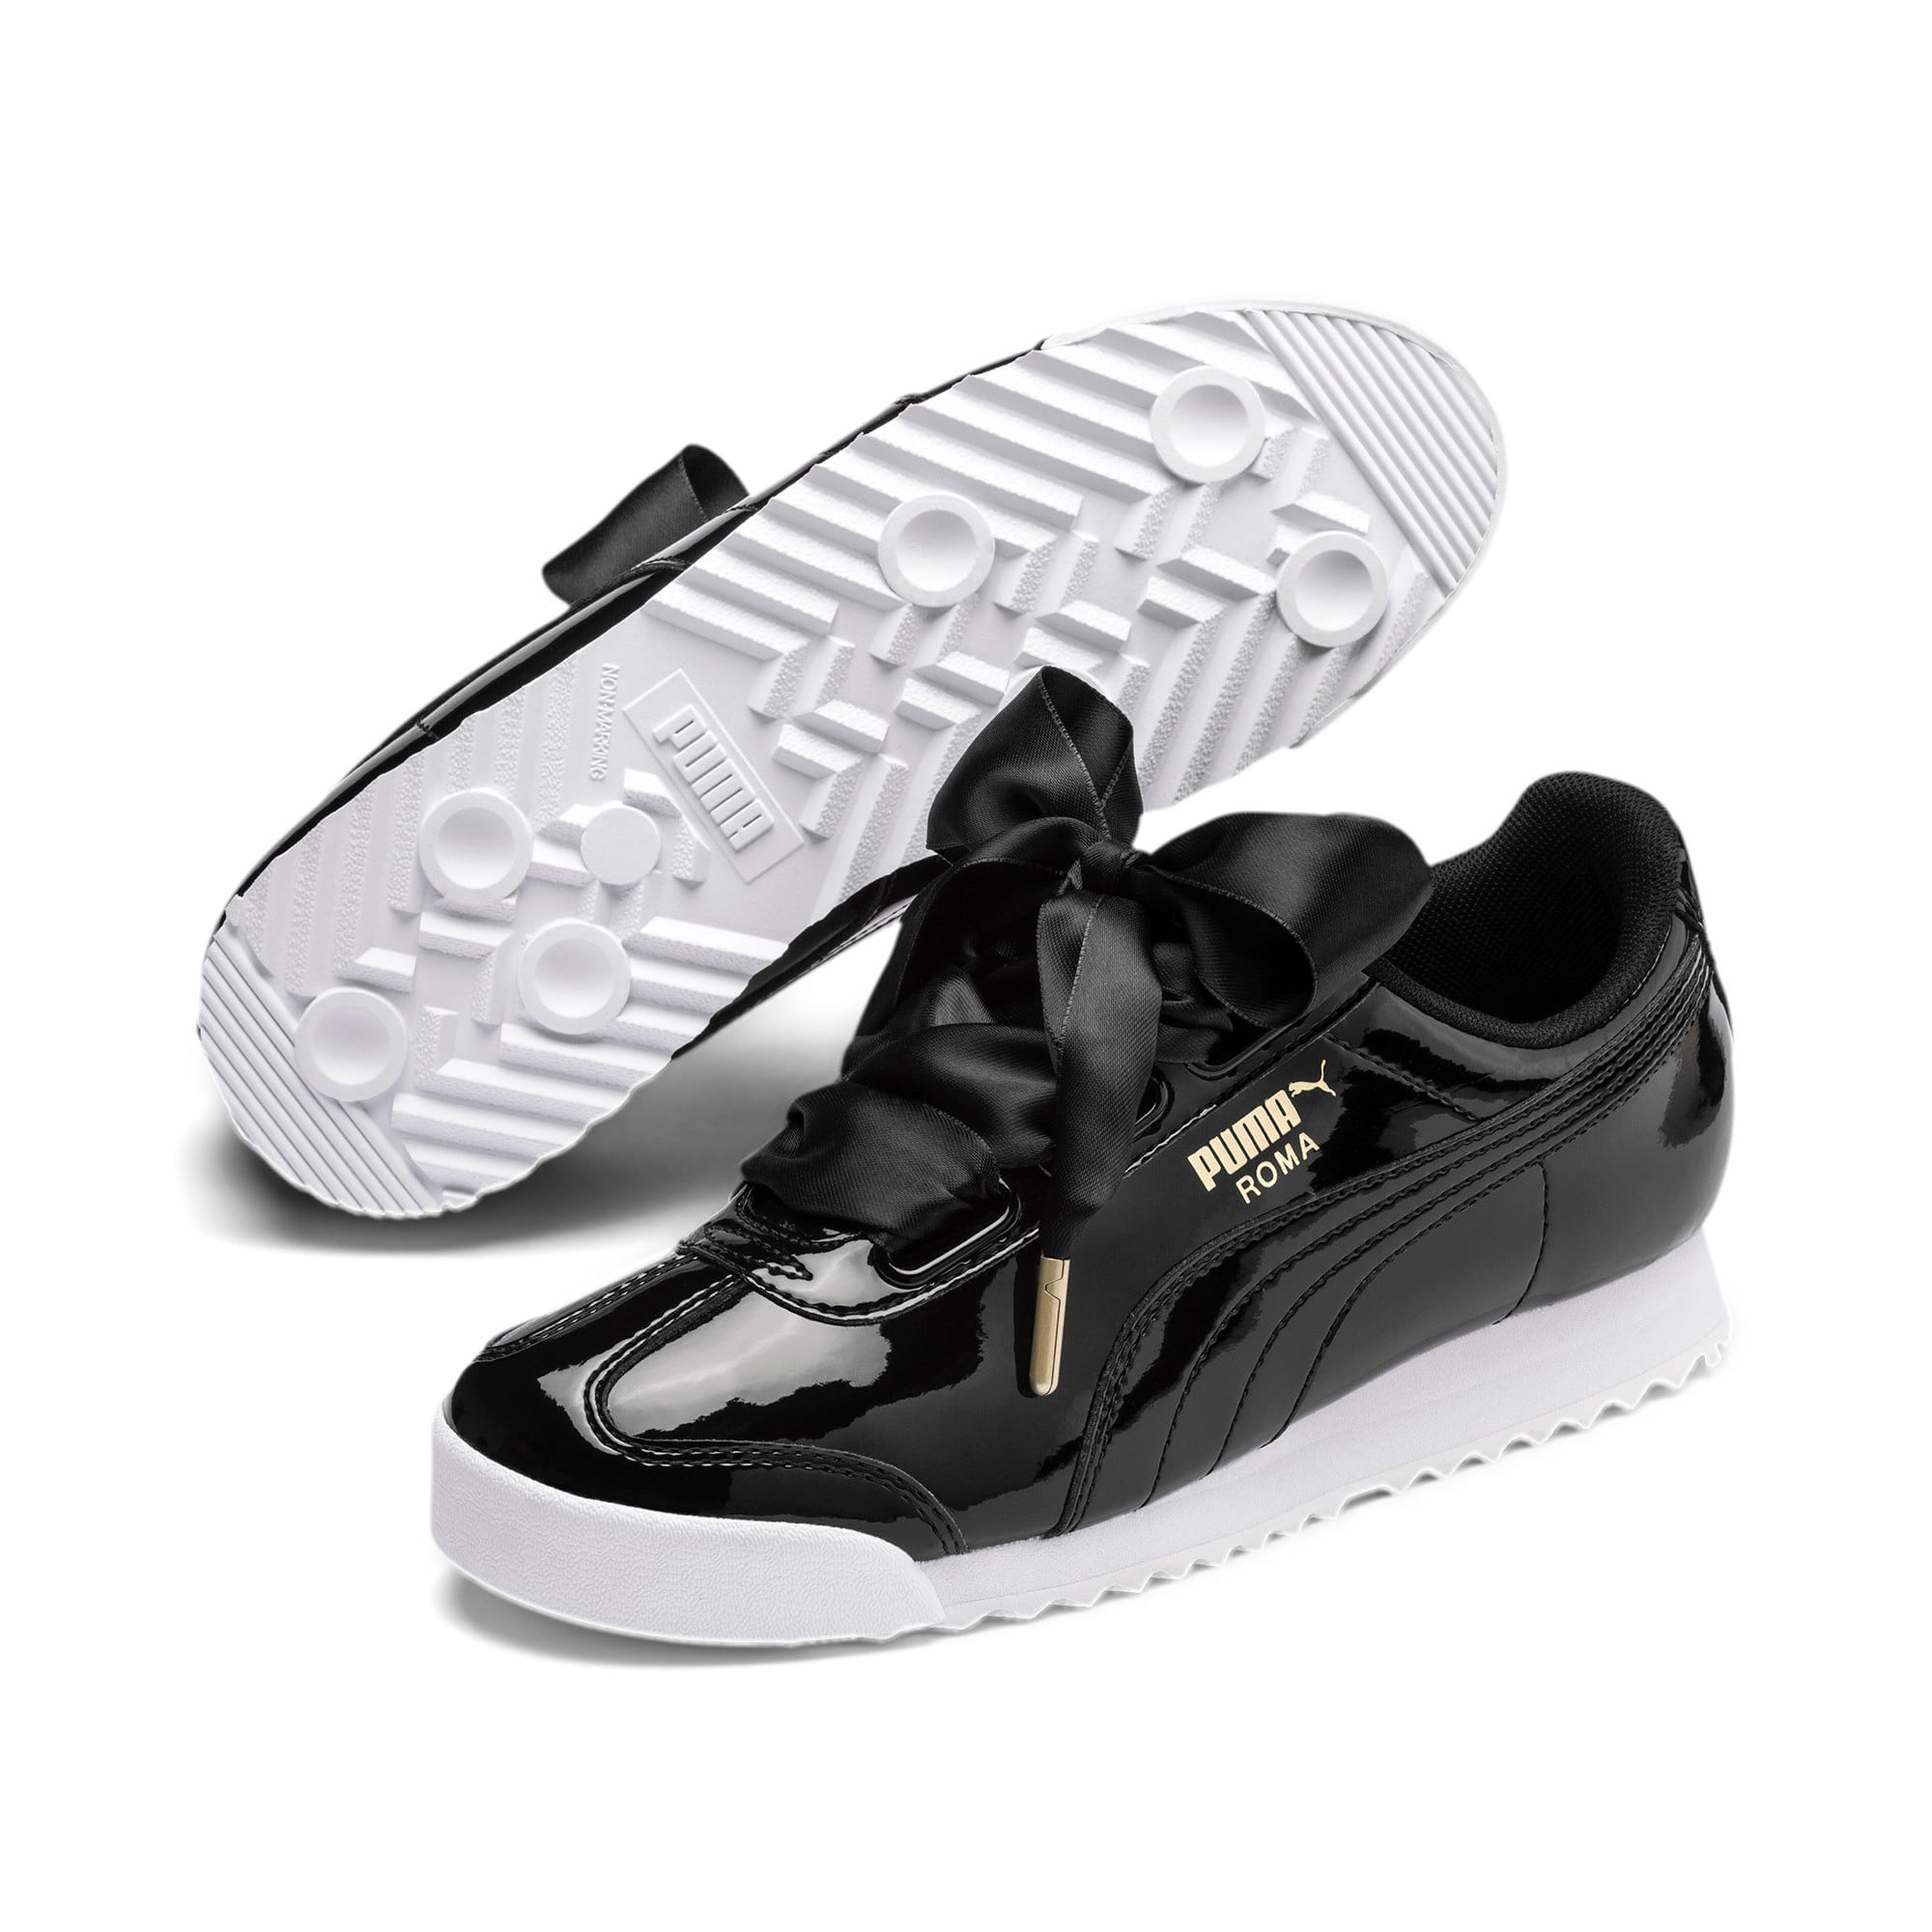 Thumbnail 2 of Roma Heart Patent Women's Sneakers, Puma Black-Puma Team Gold, medium